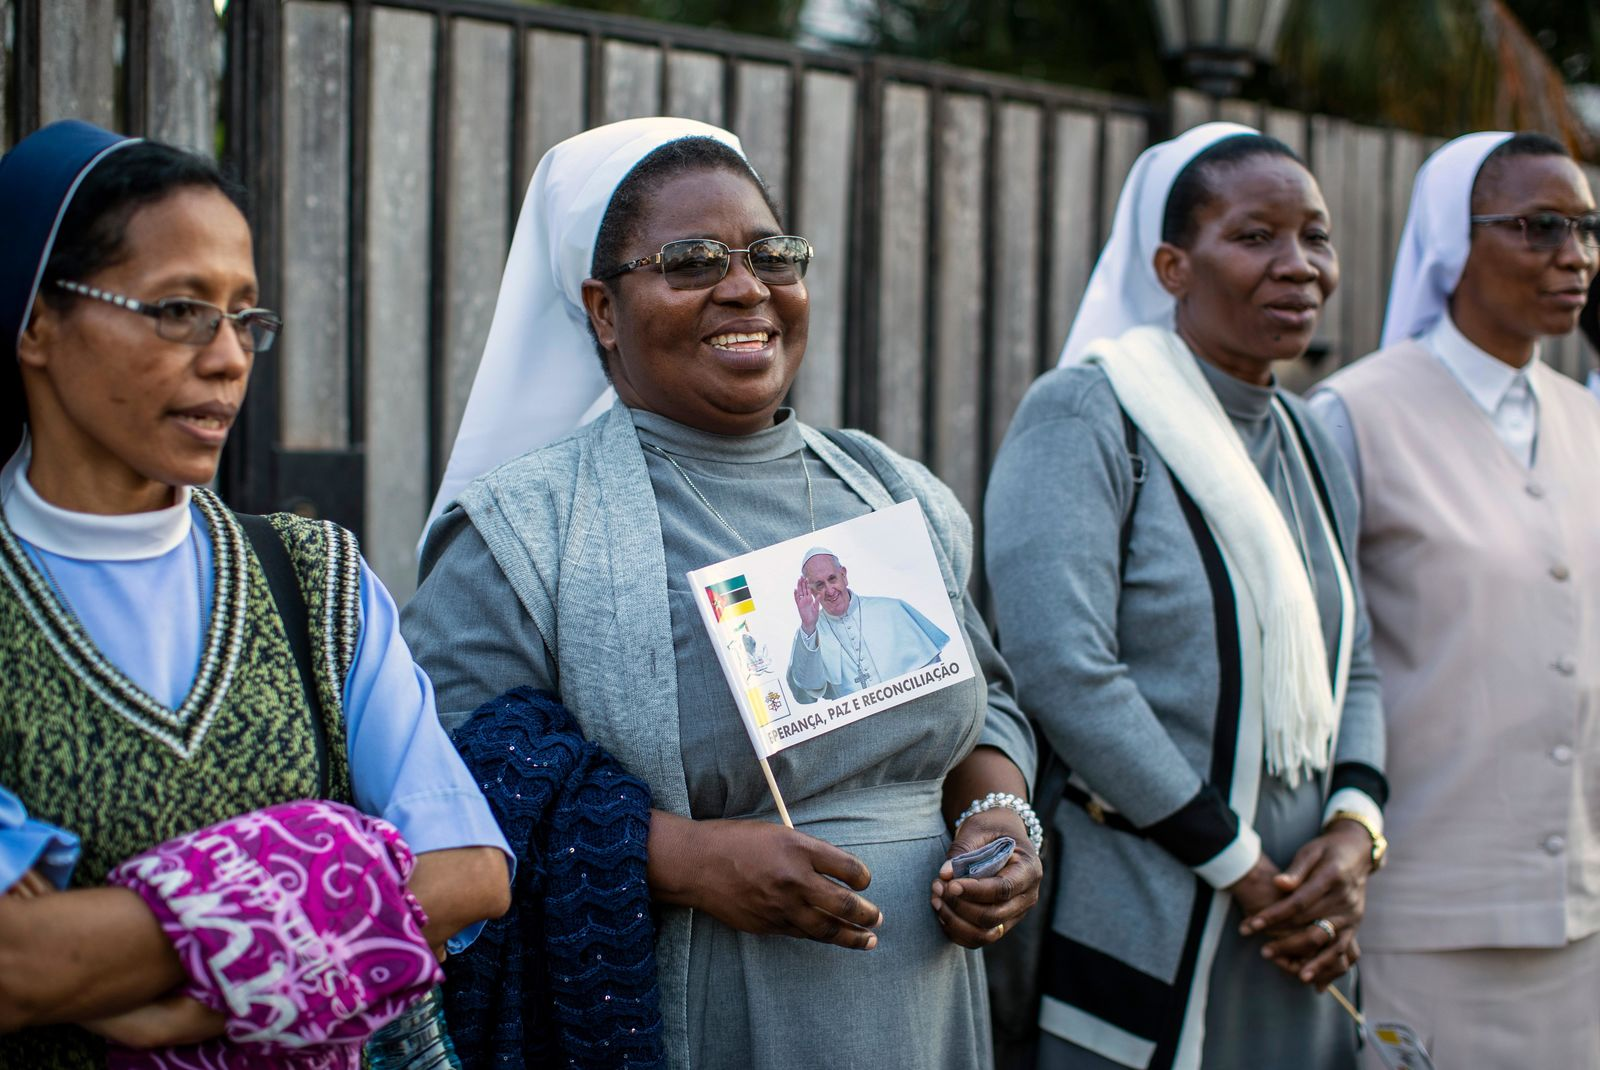 Nuns wait to see Pope Francis, ahead of his expected arrival near to the Apostolic Nunciature in the capital Maputo, Mozambique Wednesday, Sept. 4, 2019. Pope Francis is opening a three-nation pilgrimage to southern Africa with a strategic visit to Mozambique, just weeks after the country's ruling party and armed opposition signed a new peace deal and weeks before national elections. (AP Photo/Ben Curtis)